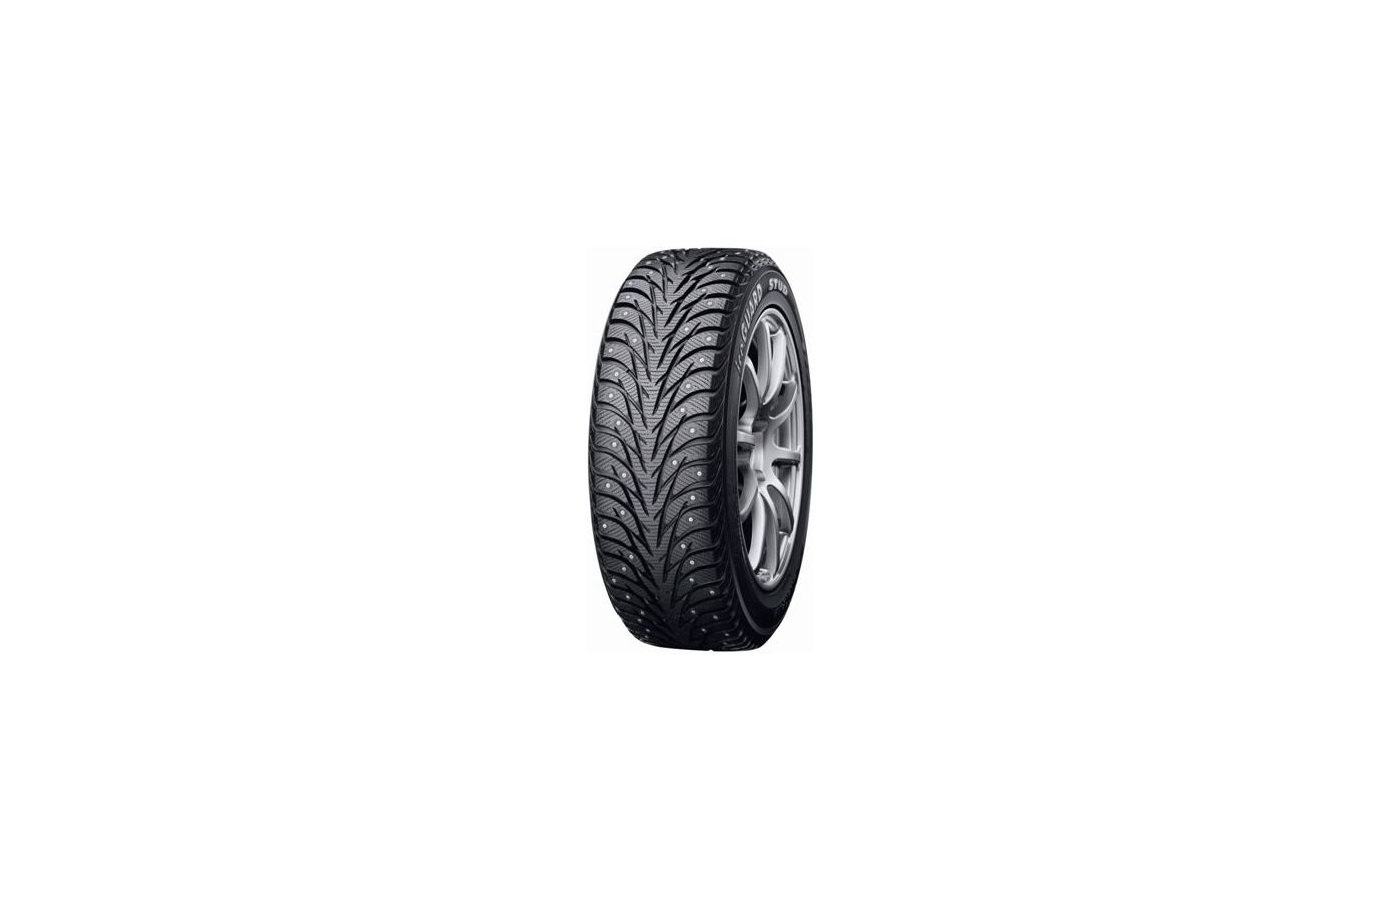 Шина Yokohama Ice Guard IG35 Plus 235/55 R18 TL 104T шип